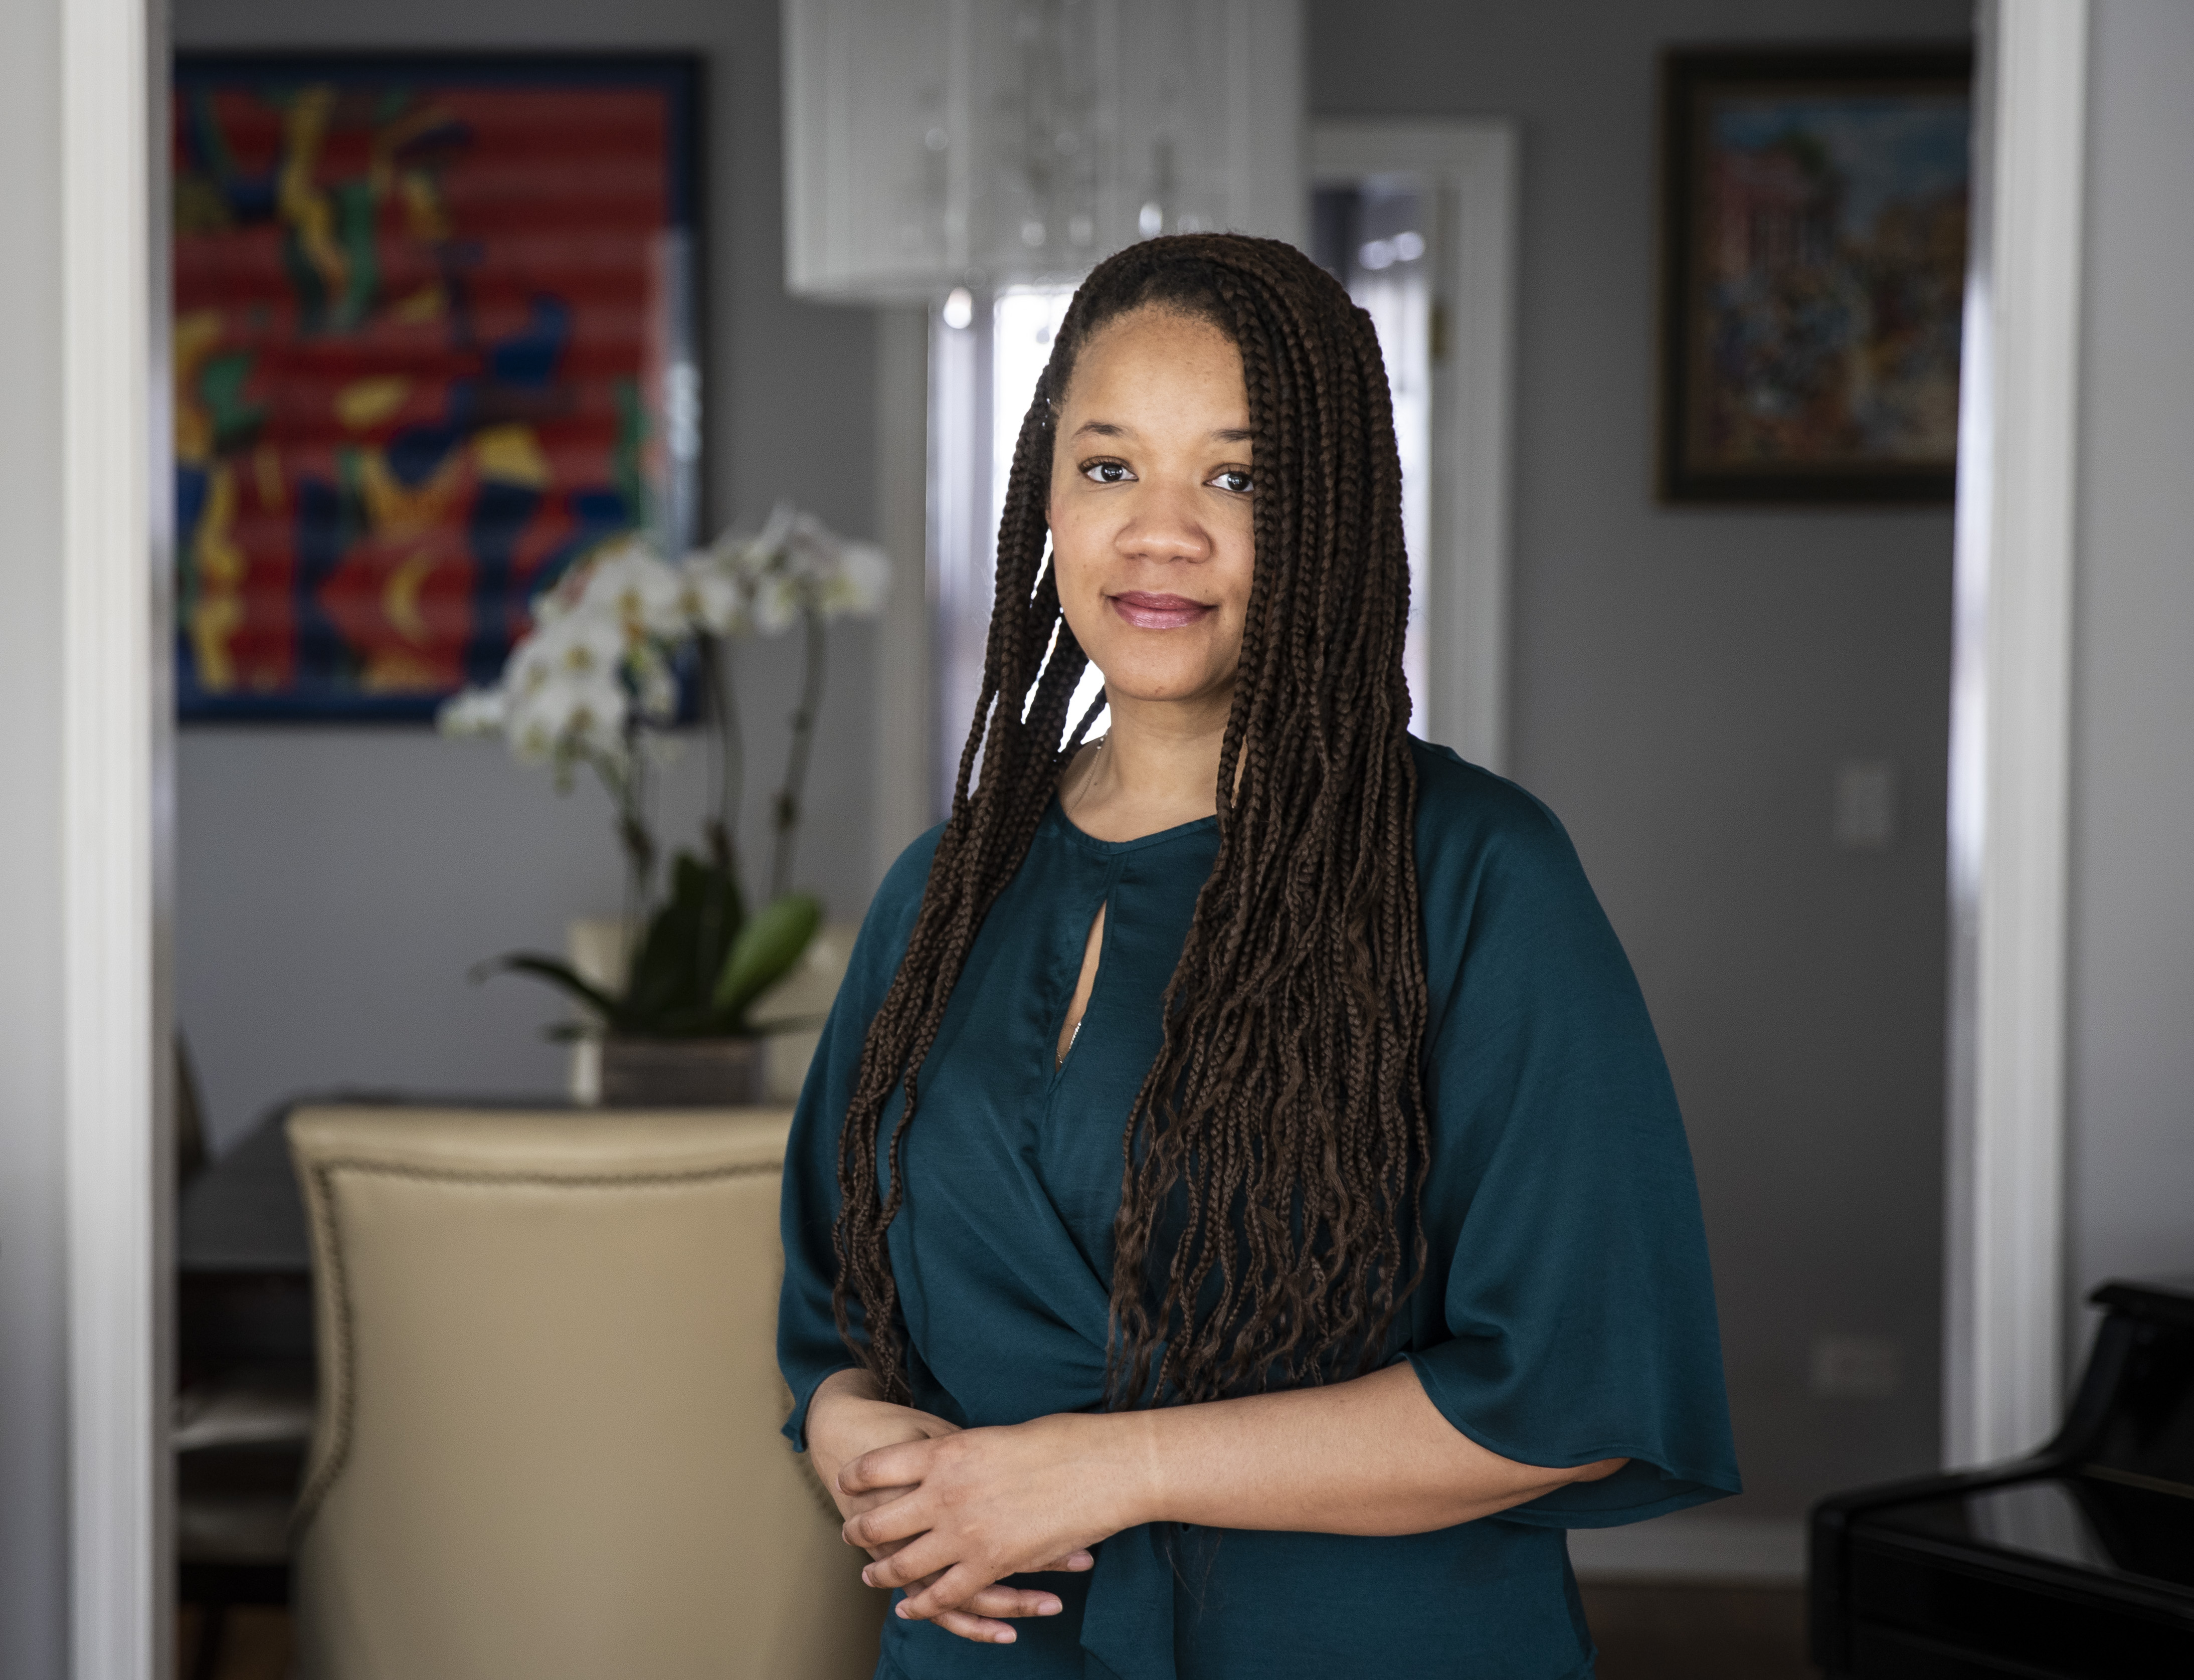 Evanston Ald. Robin Rue Simmons, who led the effort for the city's first-in-the-nation reparations plan.